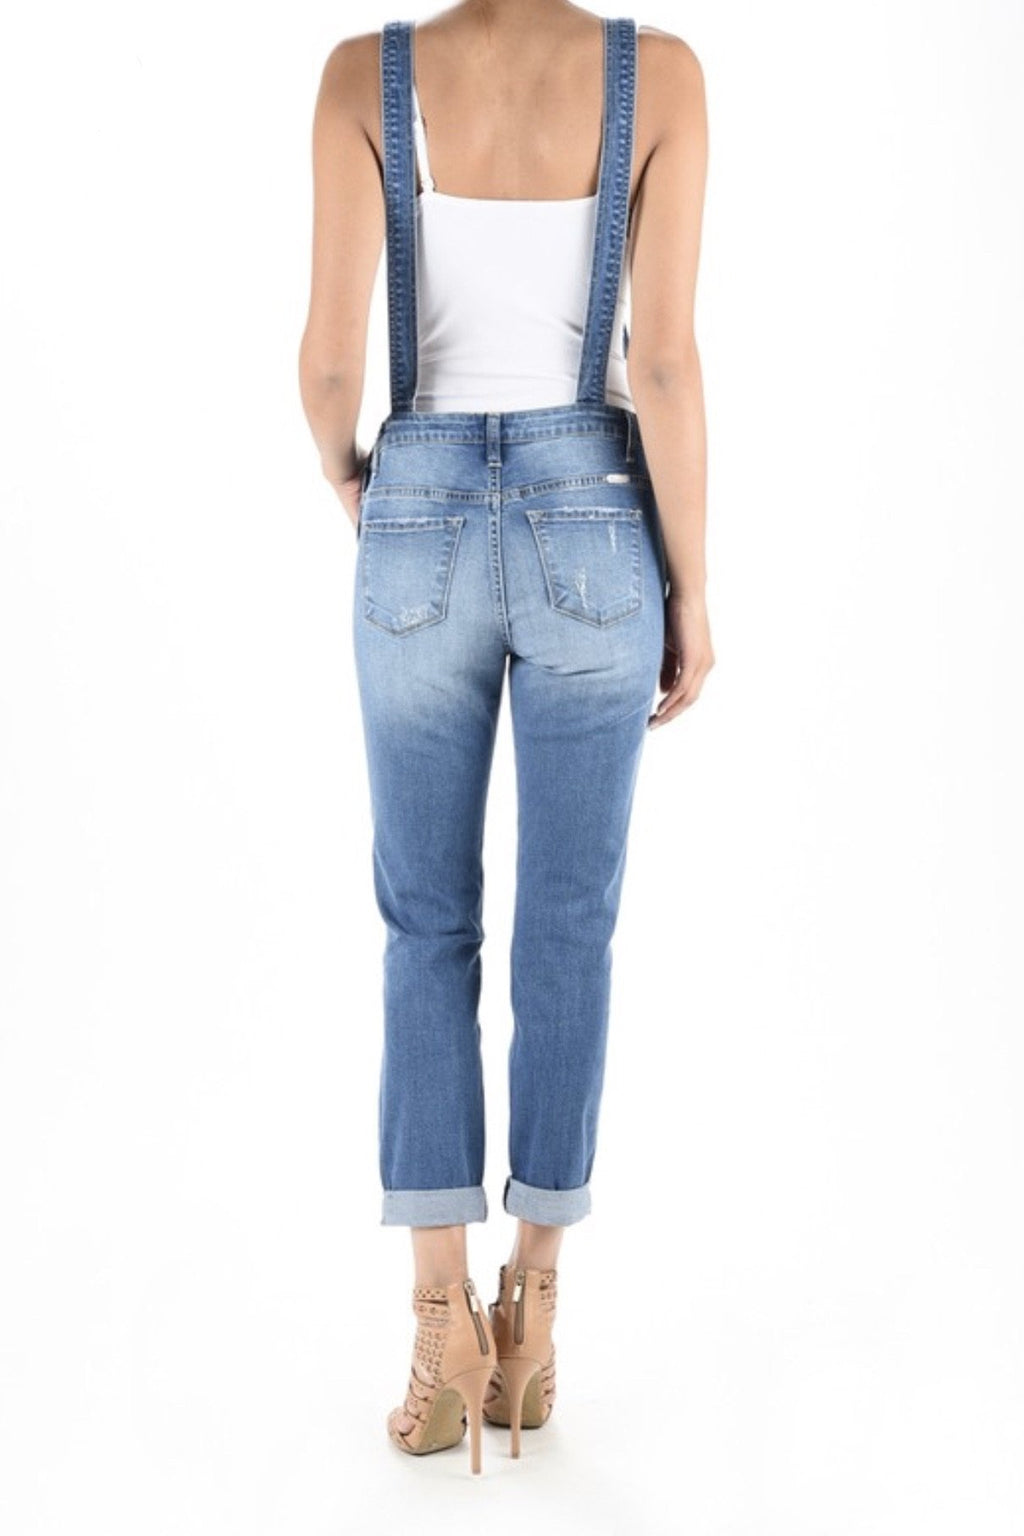 Distressed KanCan Overalls in Medium Denim - LURE Boutique